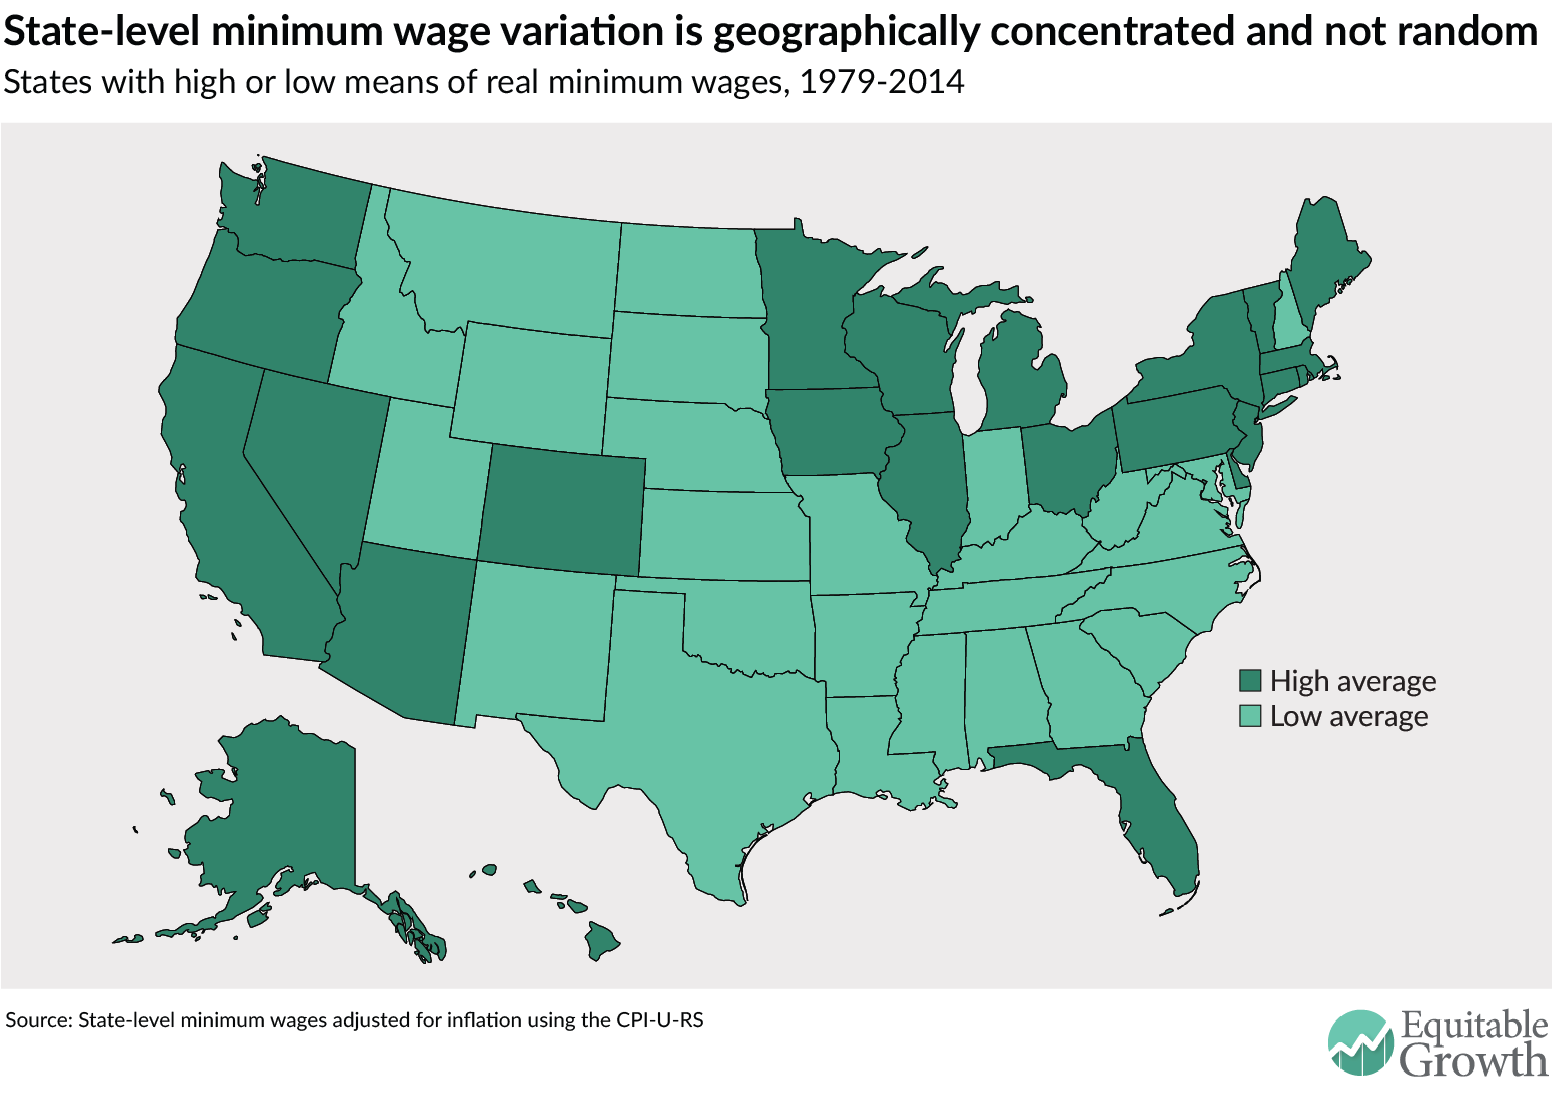 state minimum wage increases are heavily concentrated in different regions of the country